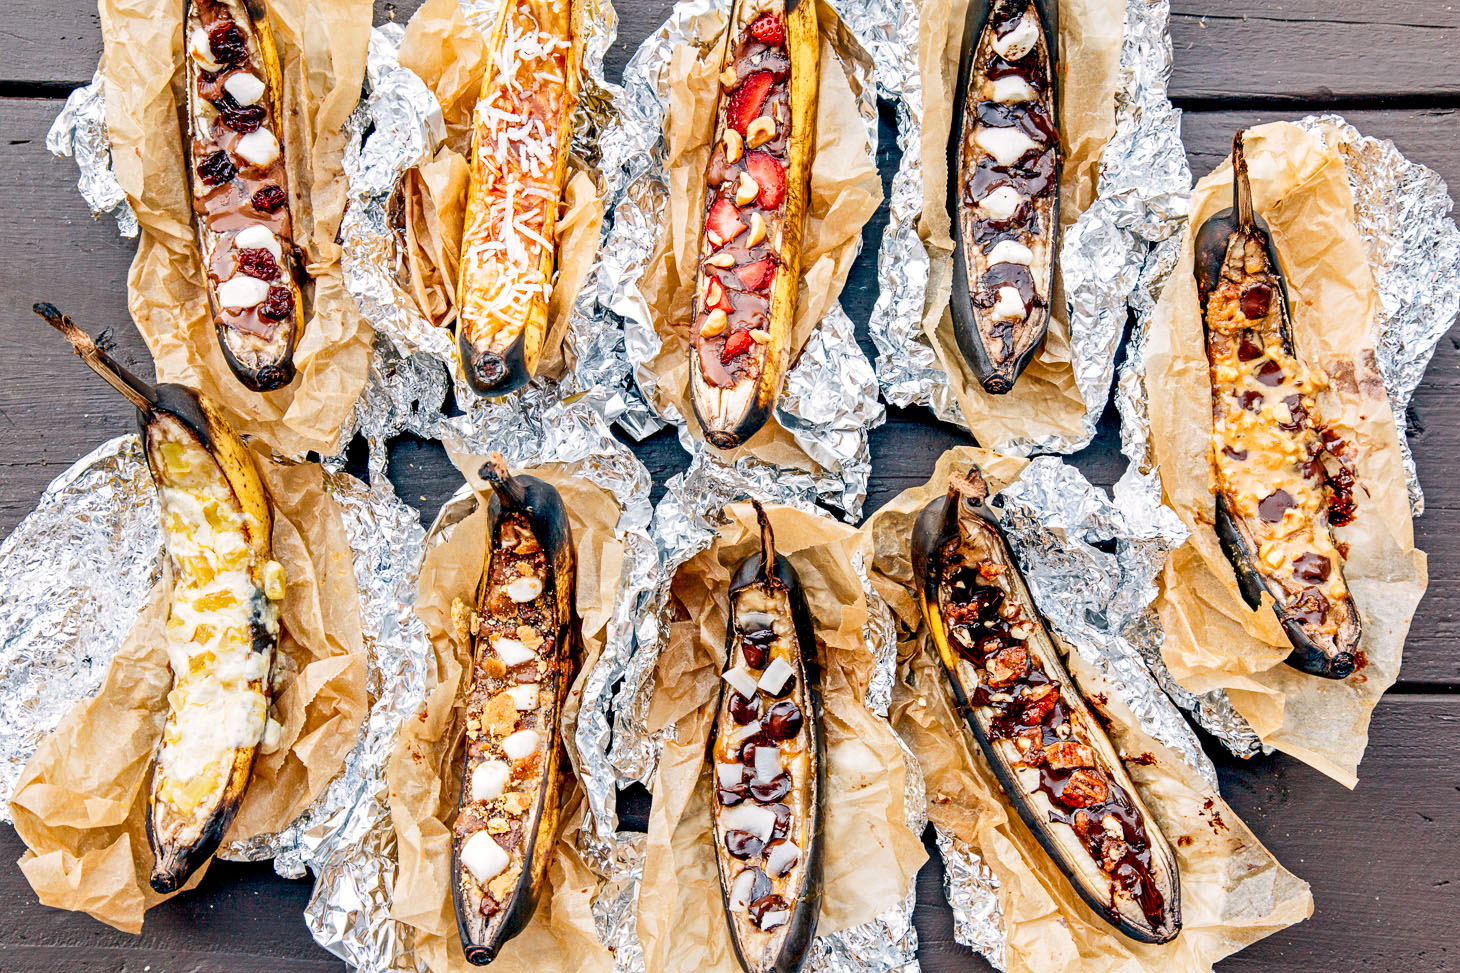 9 banana boats wrapped in foil with different toppings